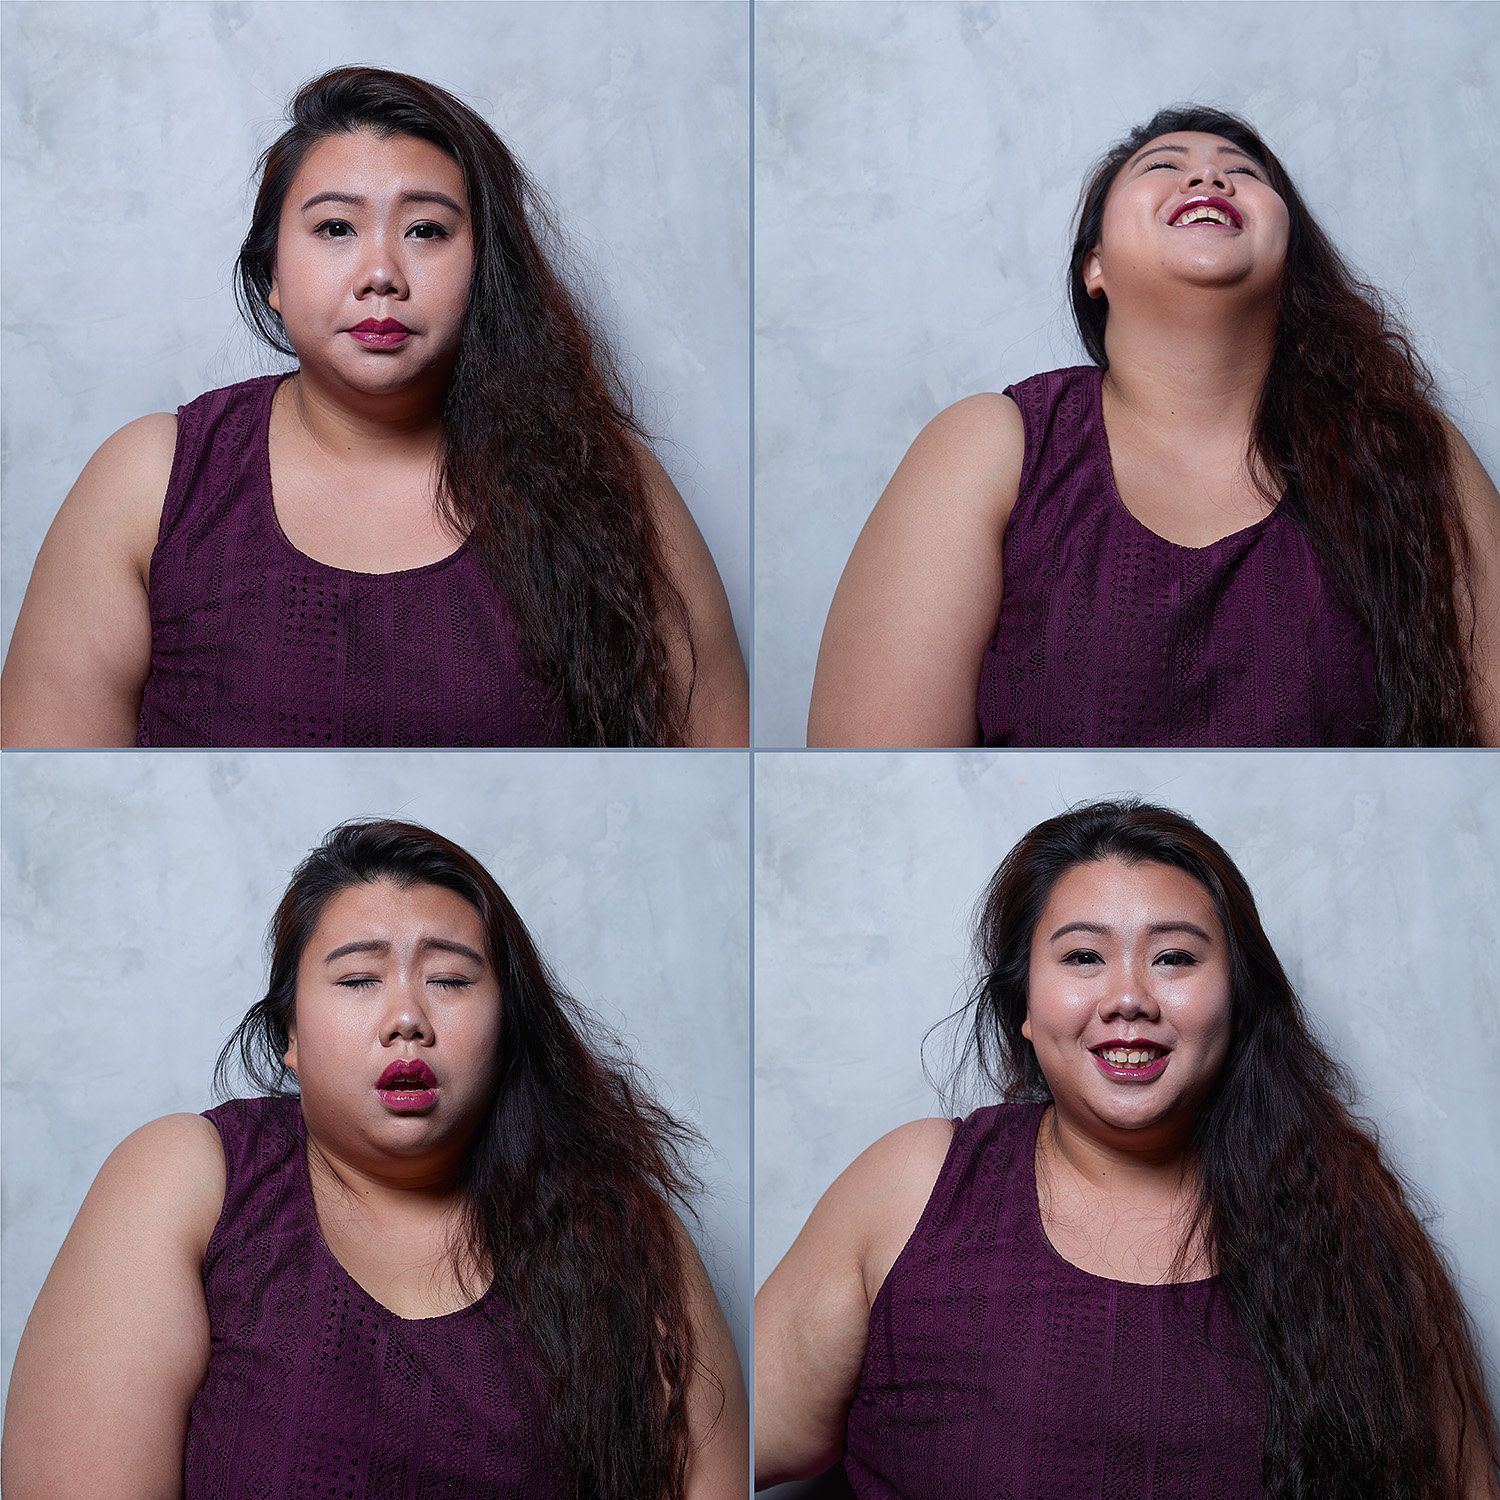 orgasms female facial expressions real of